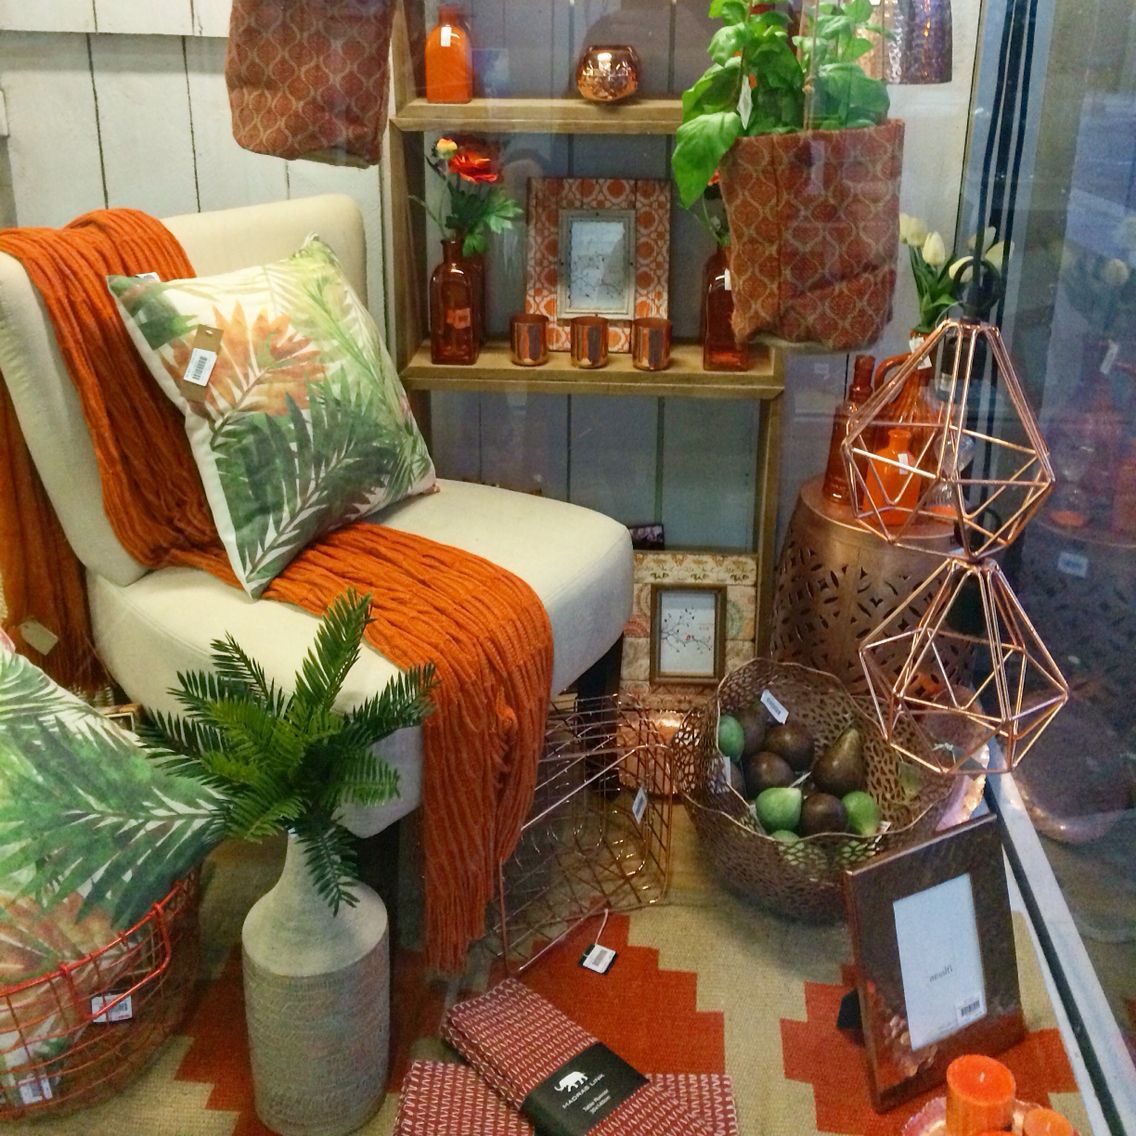 House Decoration Stores: Orange And Copper Shop Display. New Window Display At